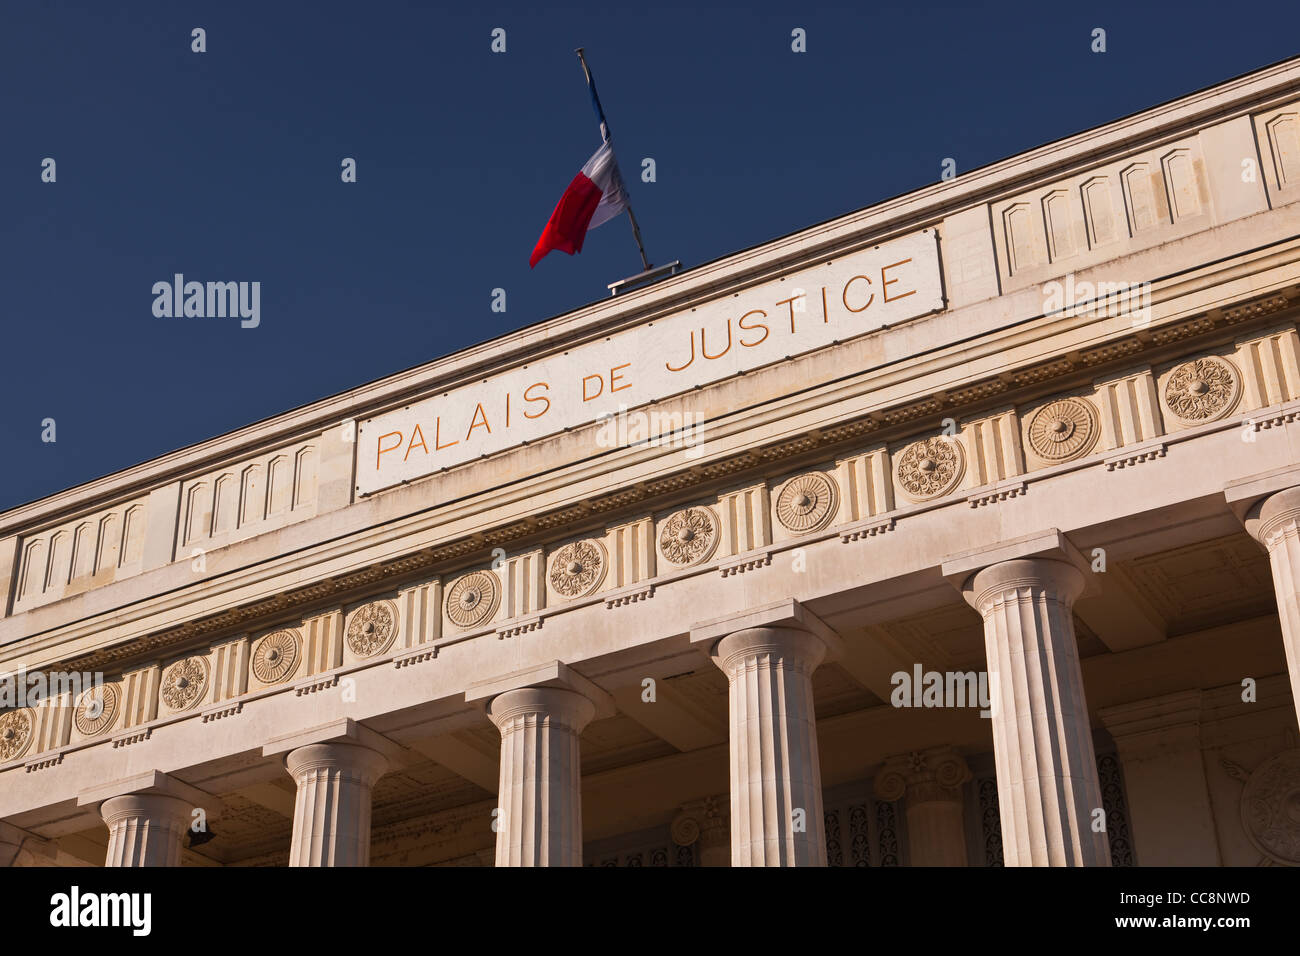 The french flag flying over the court house in Tours, France - Stock Image